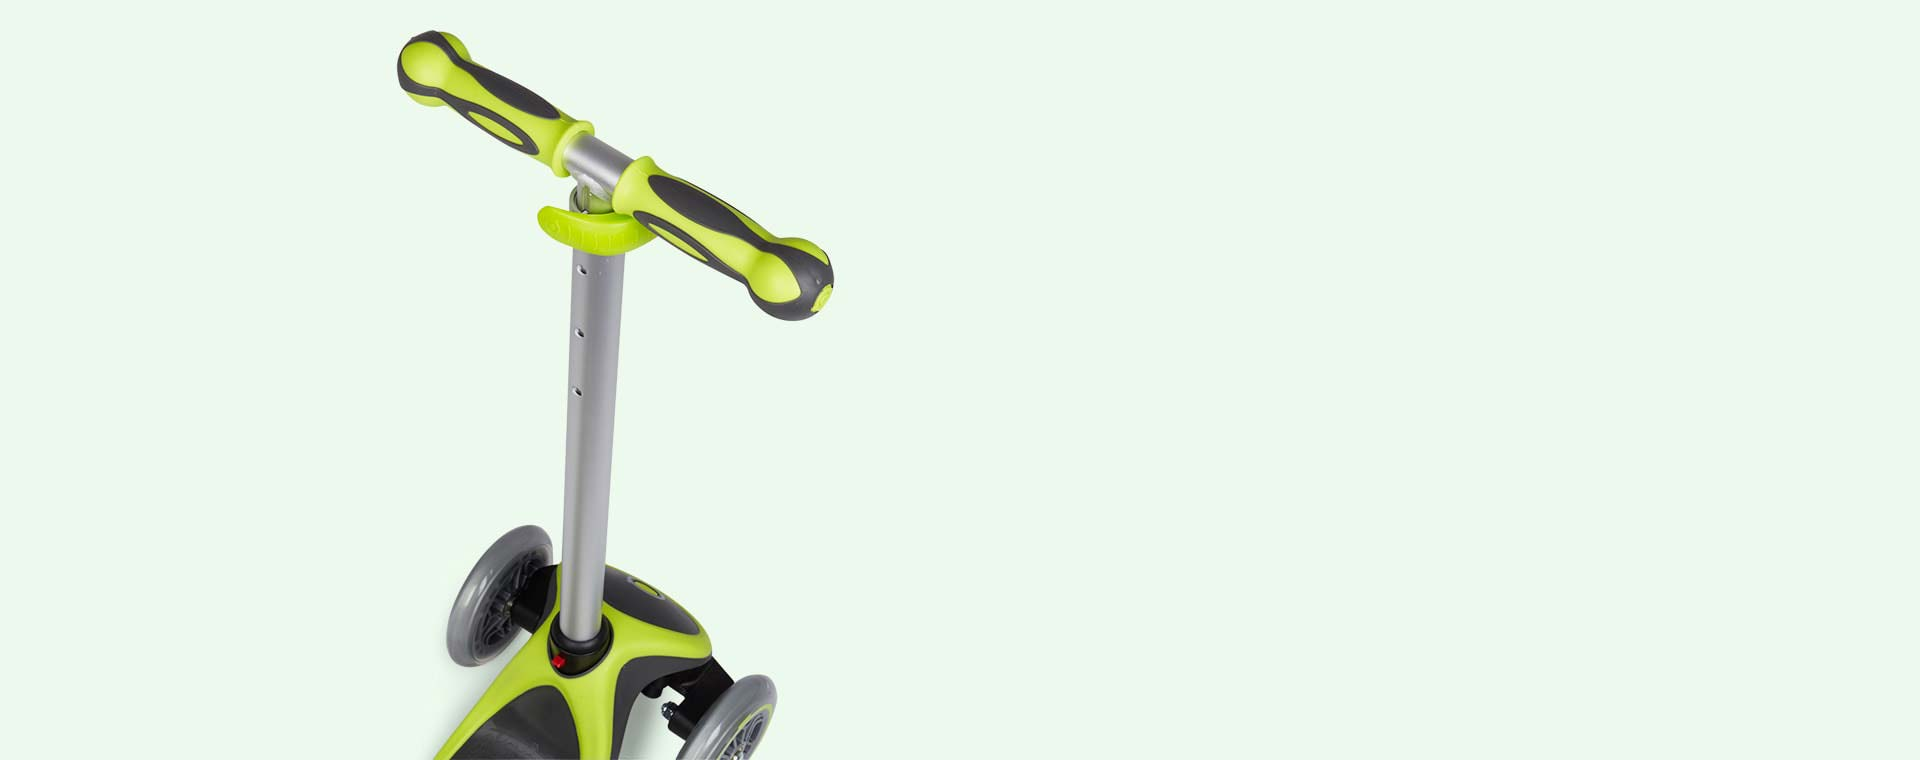 Lime Green Globber Evo 4-in-1 Scooter Plus Light